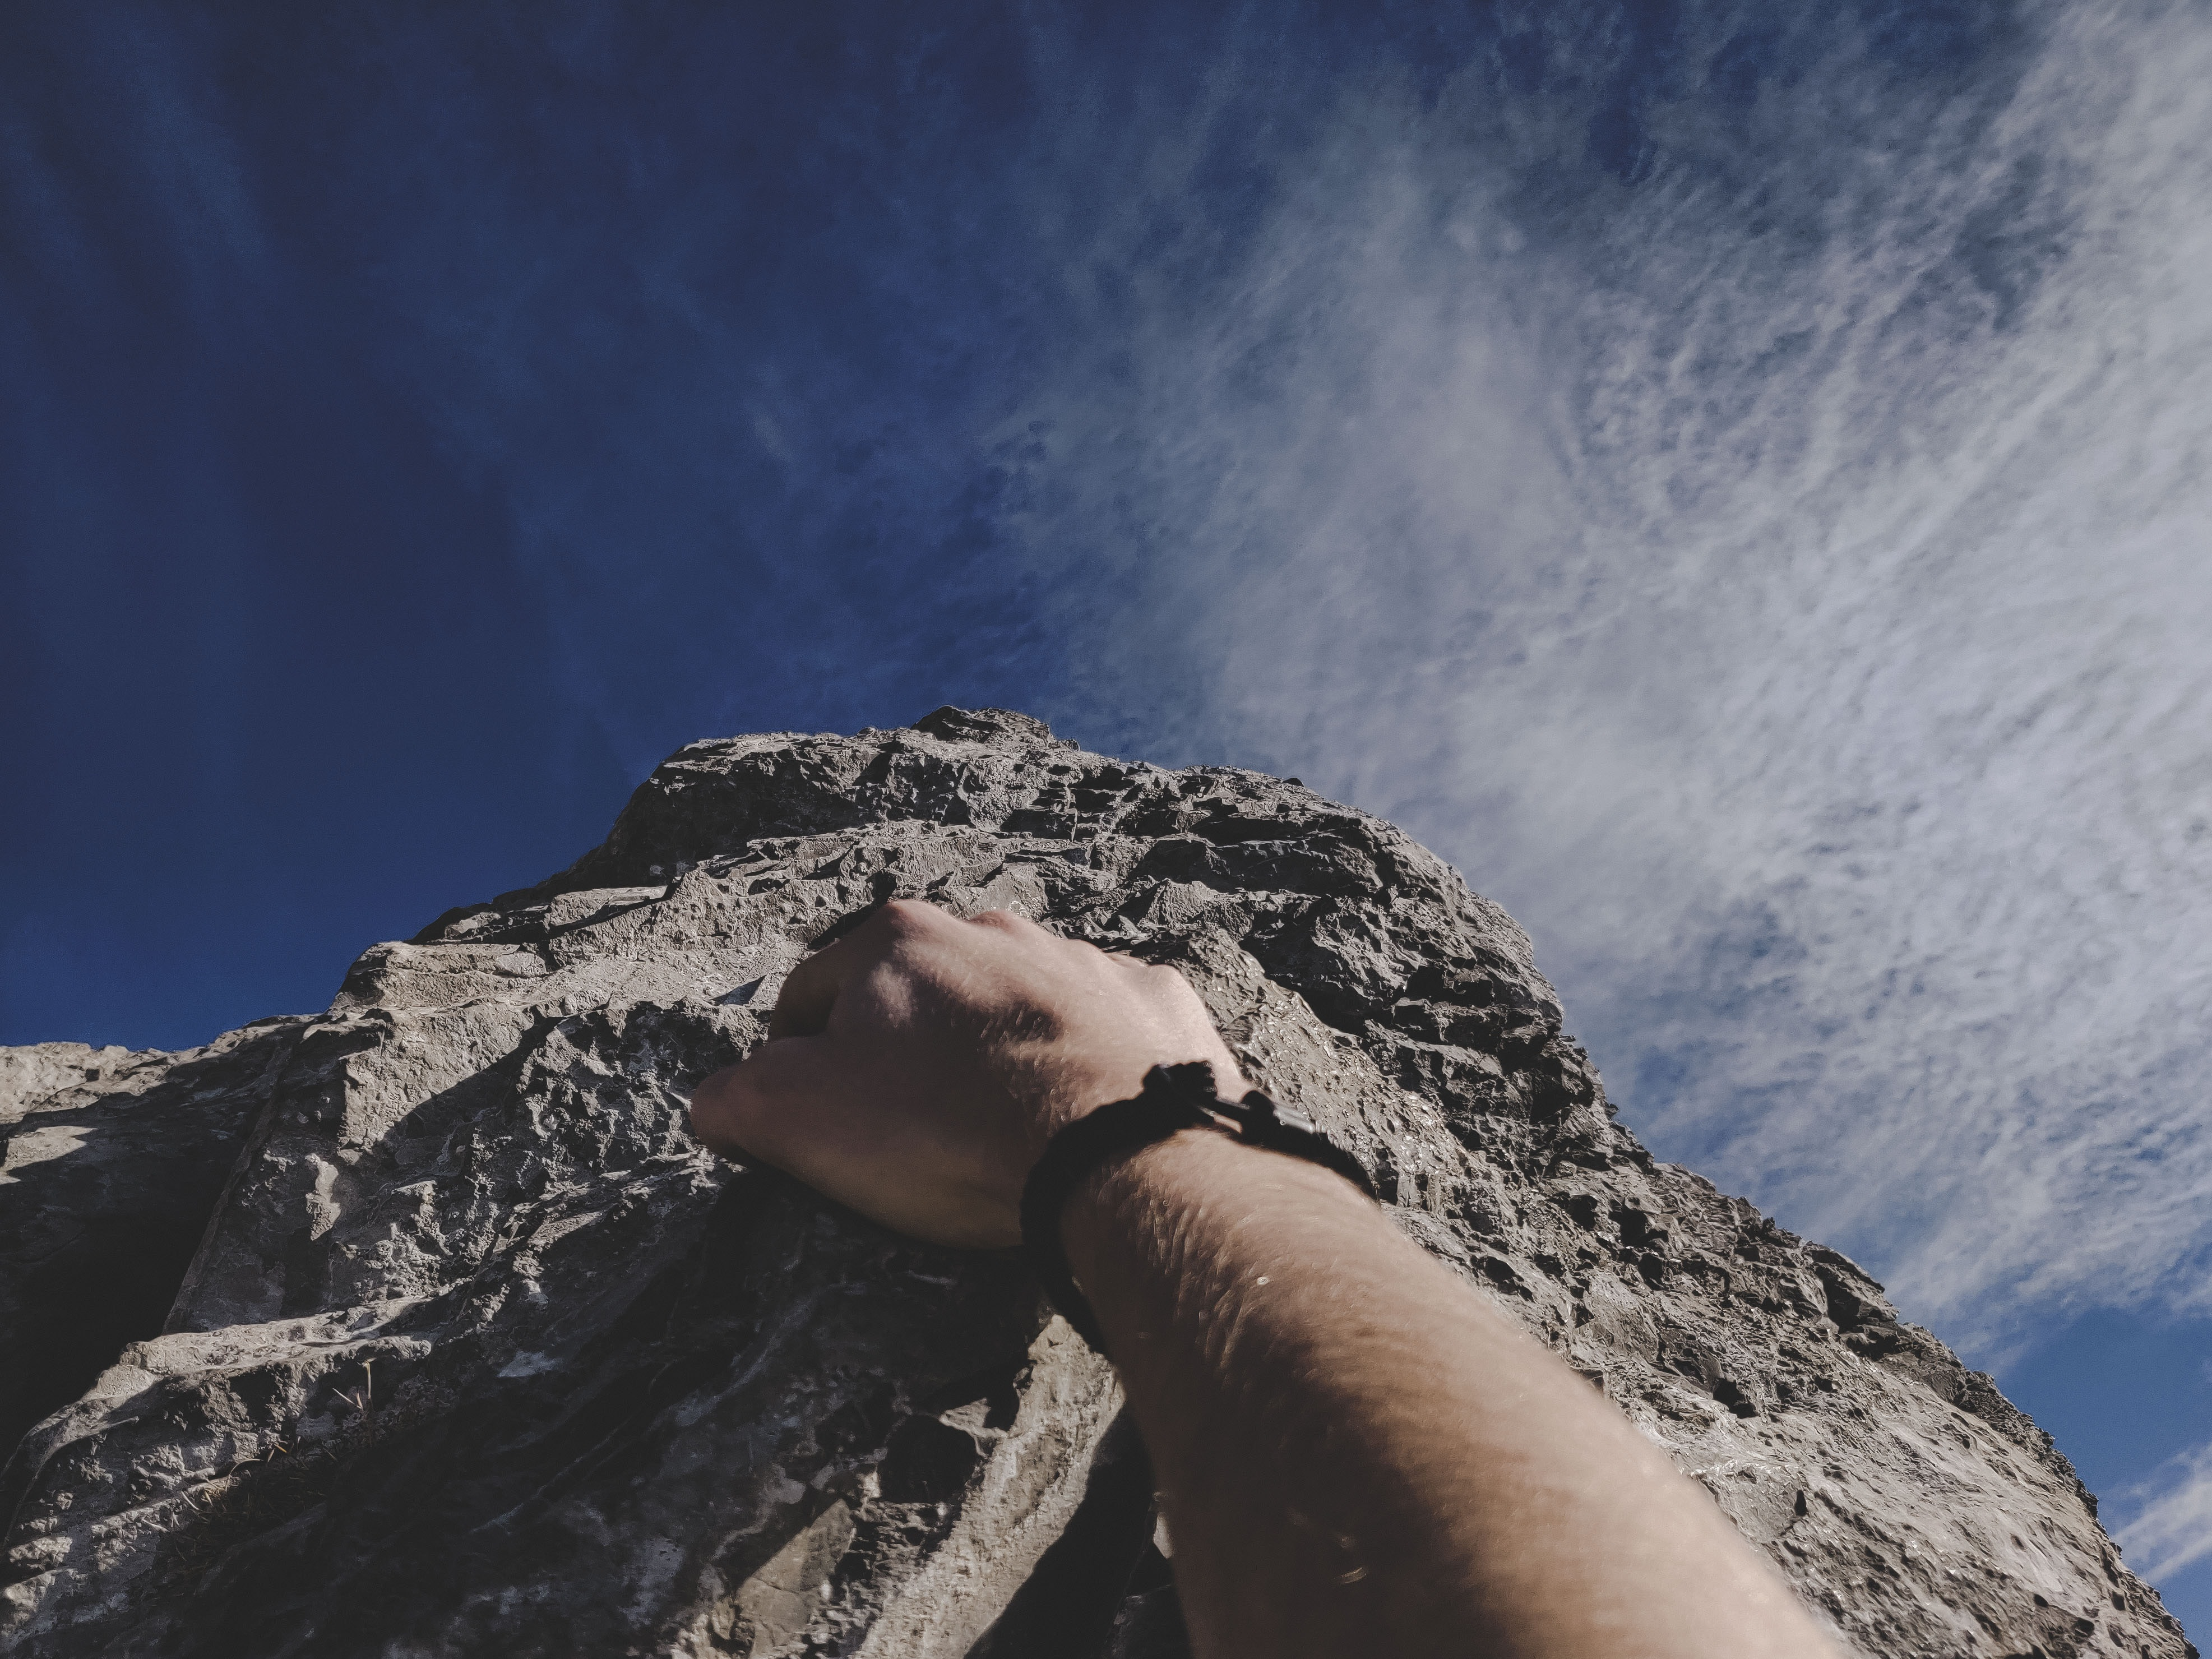 Picture of hand climbing up a mountain